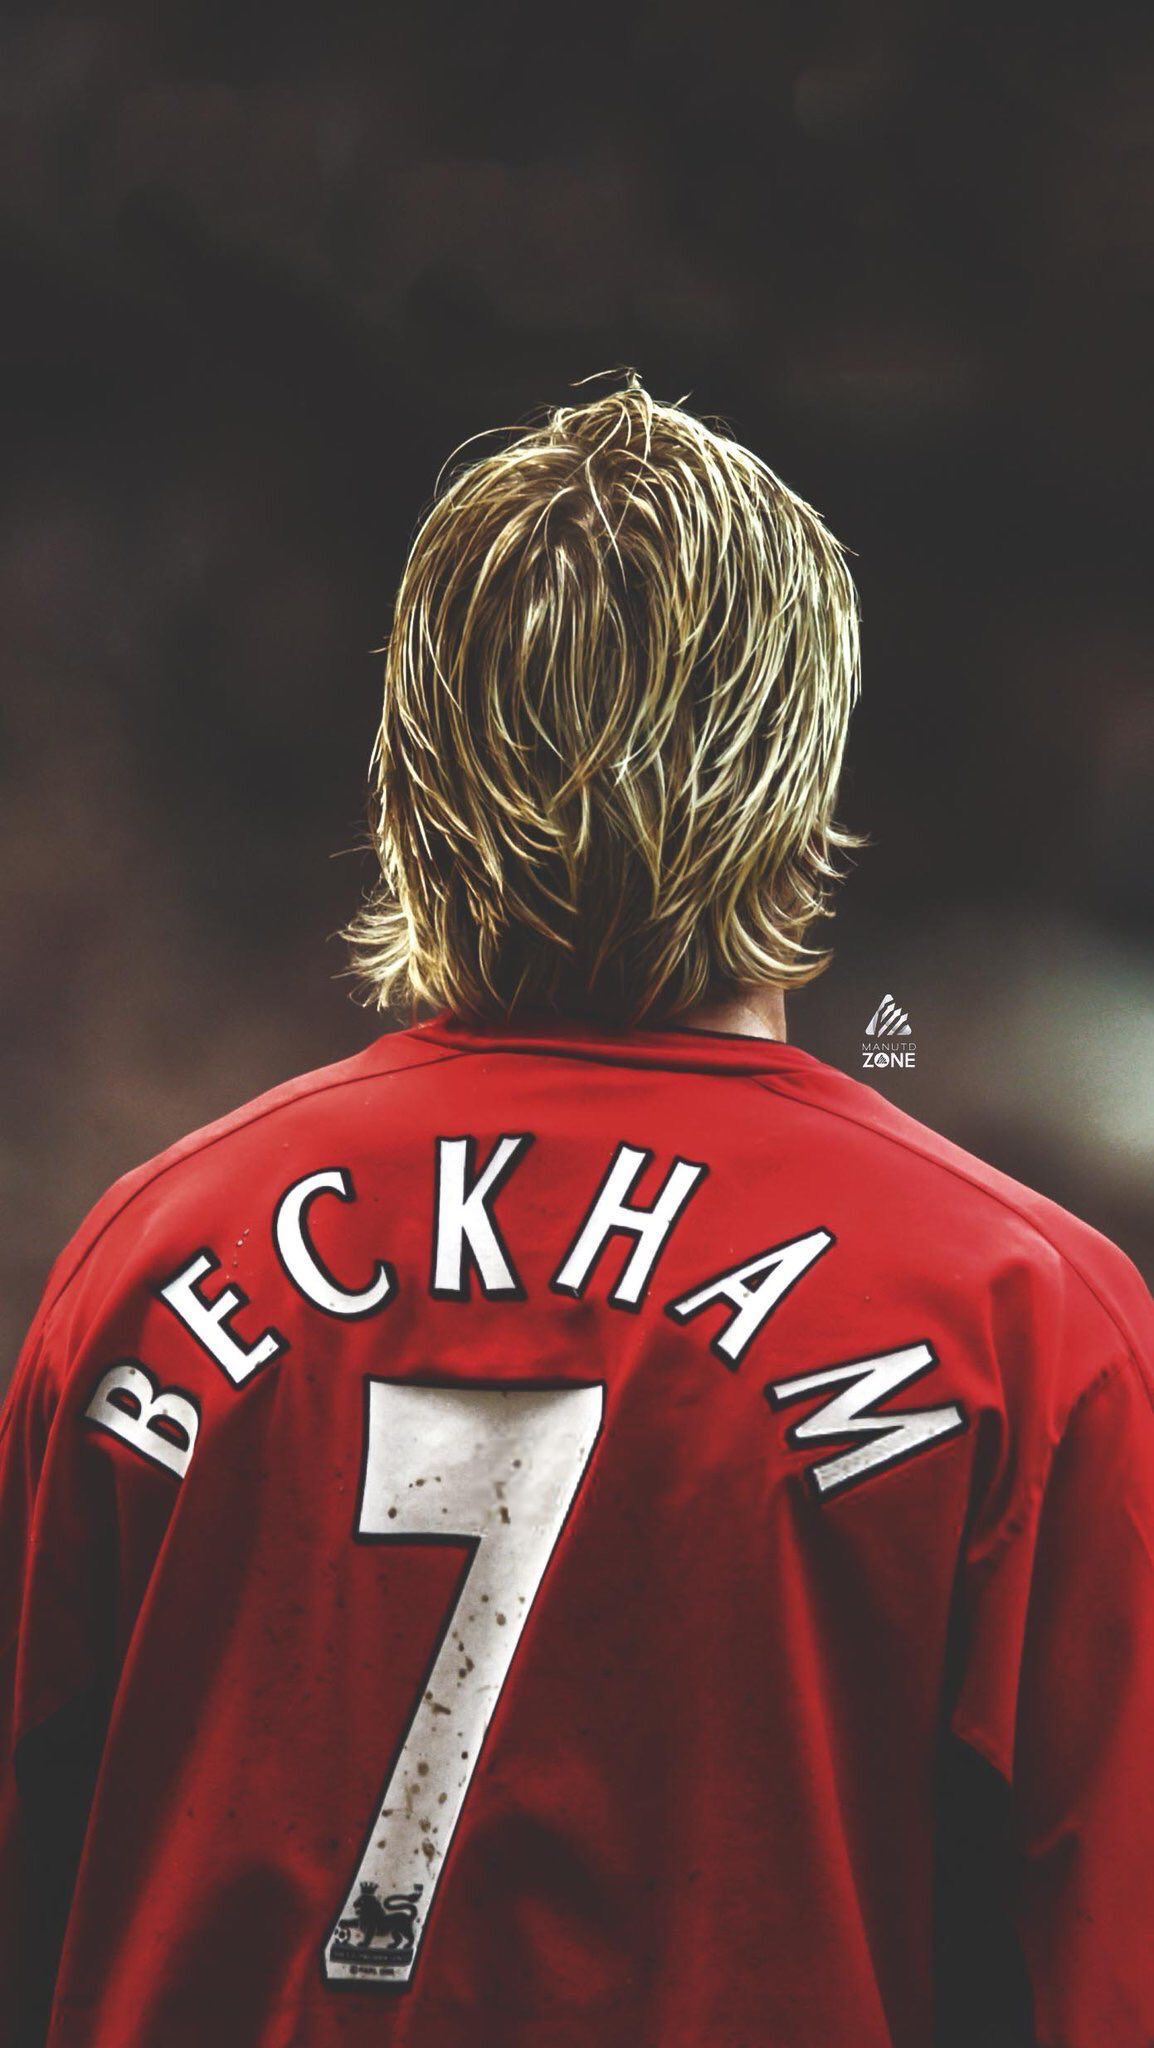 Pin By Saeid1o On Becks Man United David Beckham Manchester United David Beckham Soccer David Beckham Football